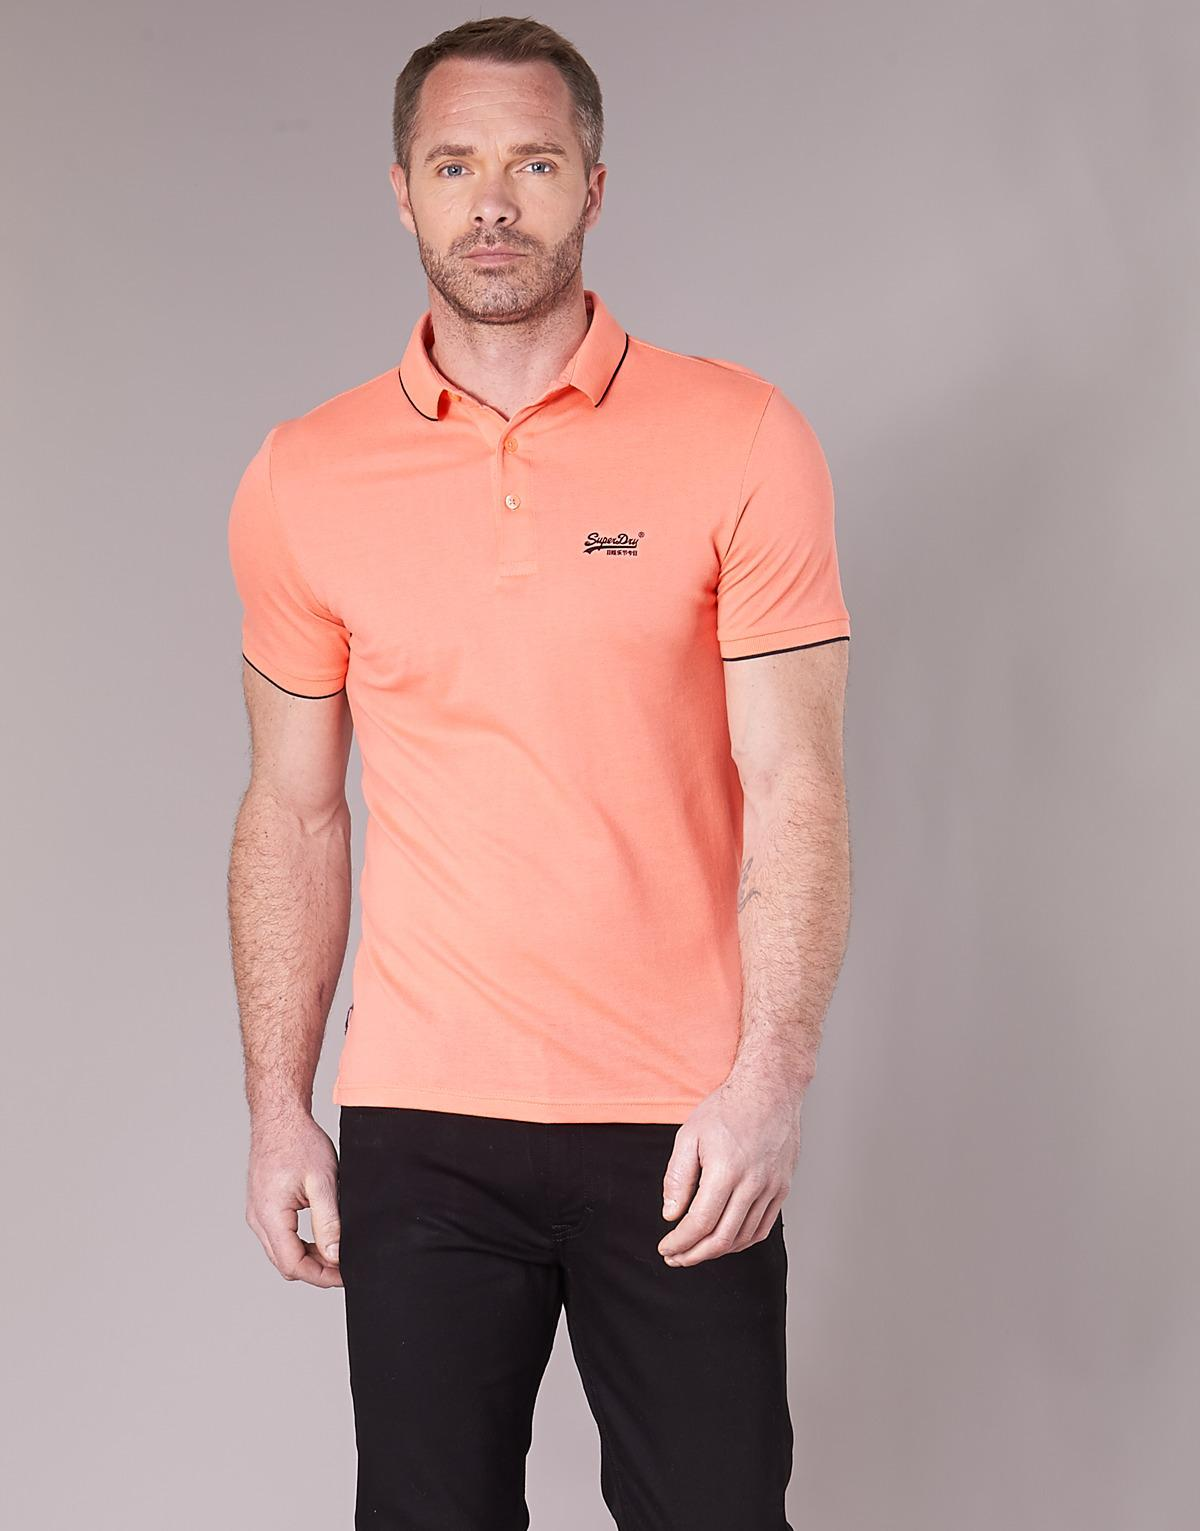 Superdry Pink Polo Shirt Mens Rockwall Auction